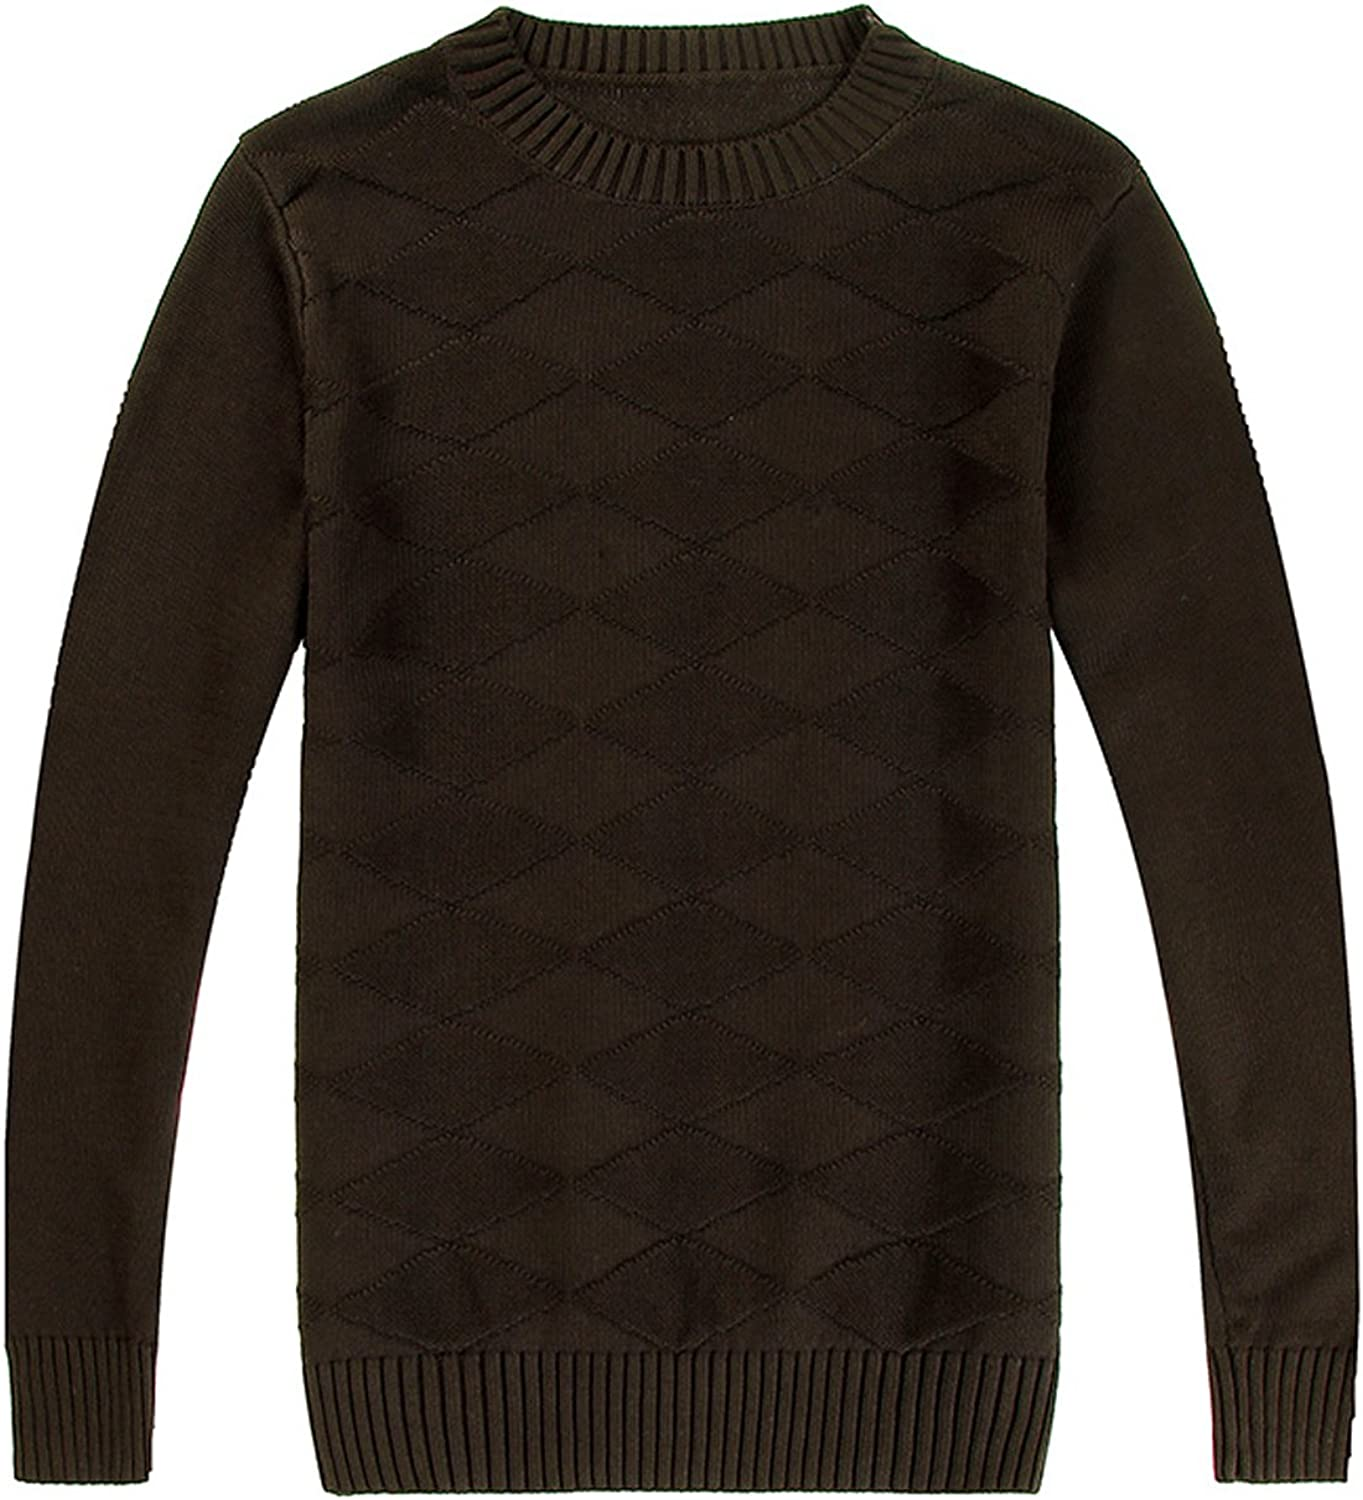 Only Faith Mens Round Collar Long Sleeve Knitted Sweater